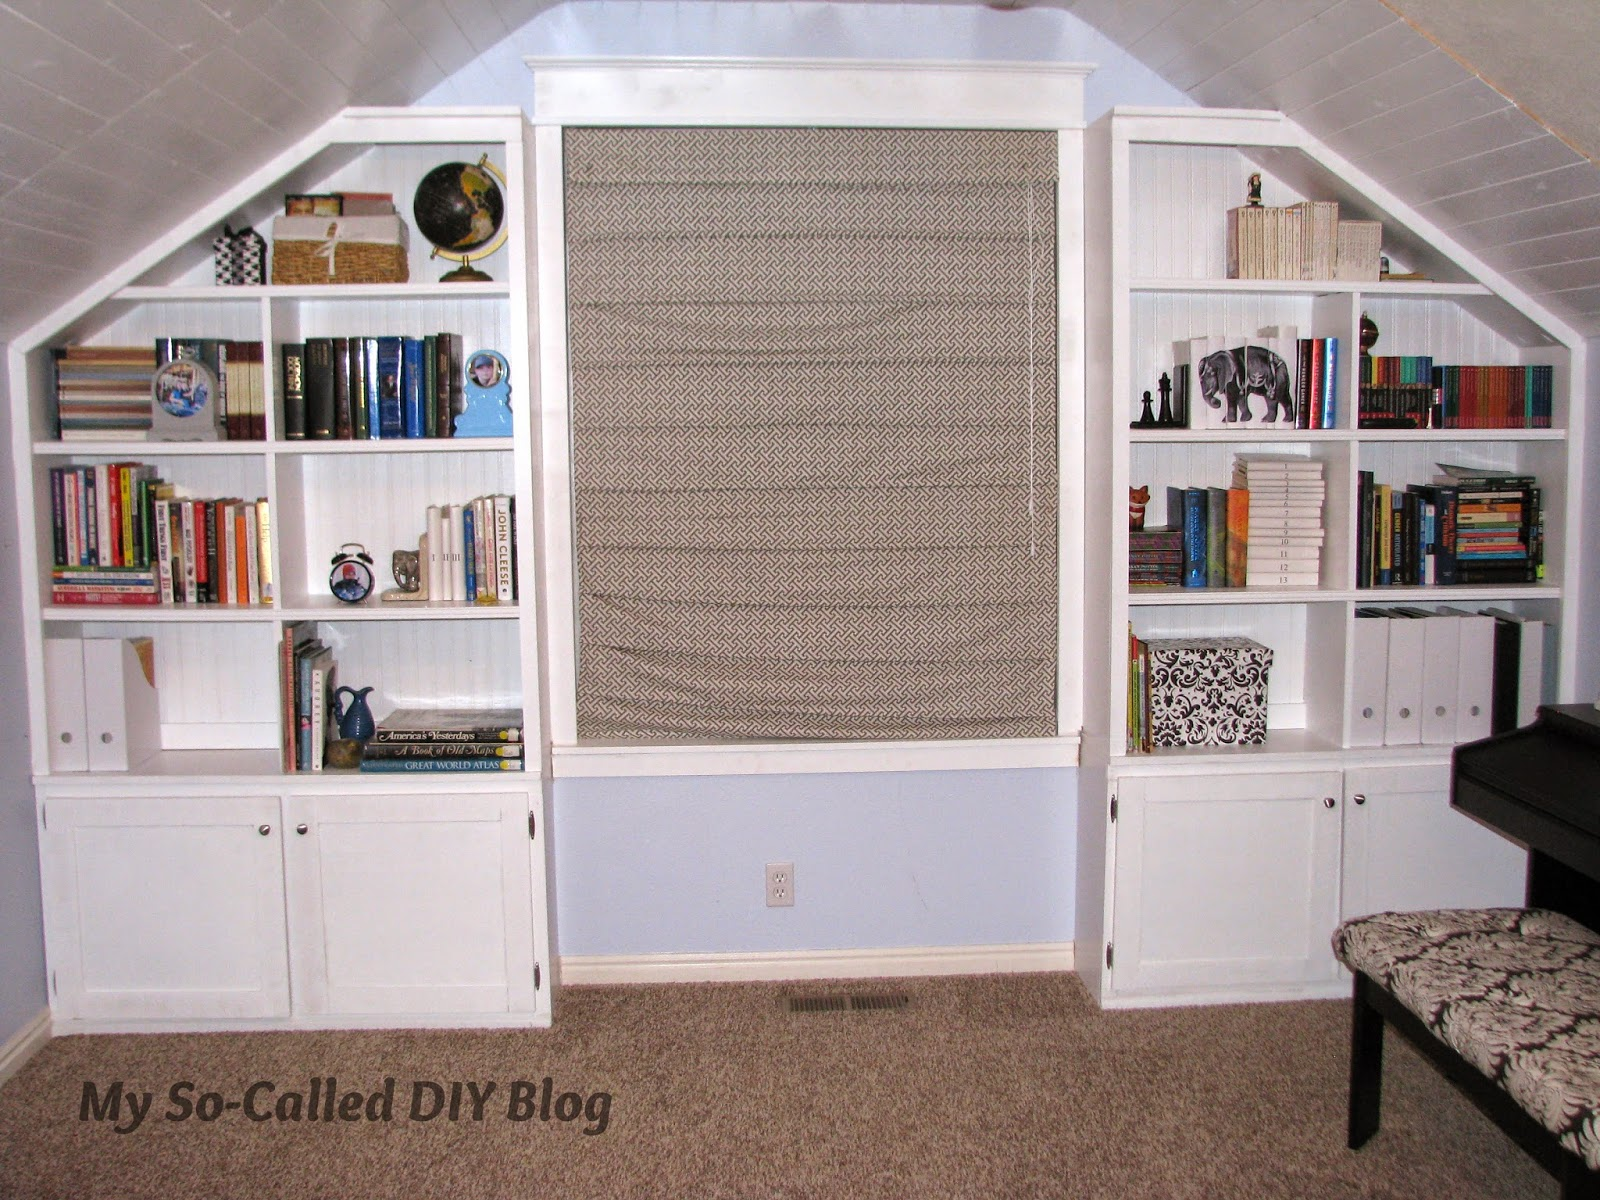 Tremendous My So Called Diy Blog Project Bonus Room Built In Shelves Cjindustries Chair Design For Home Cjindustriesco